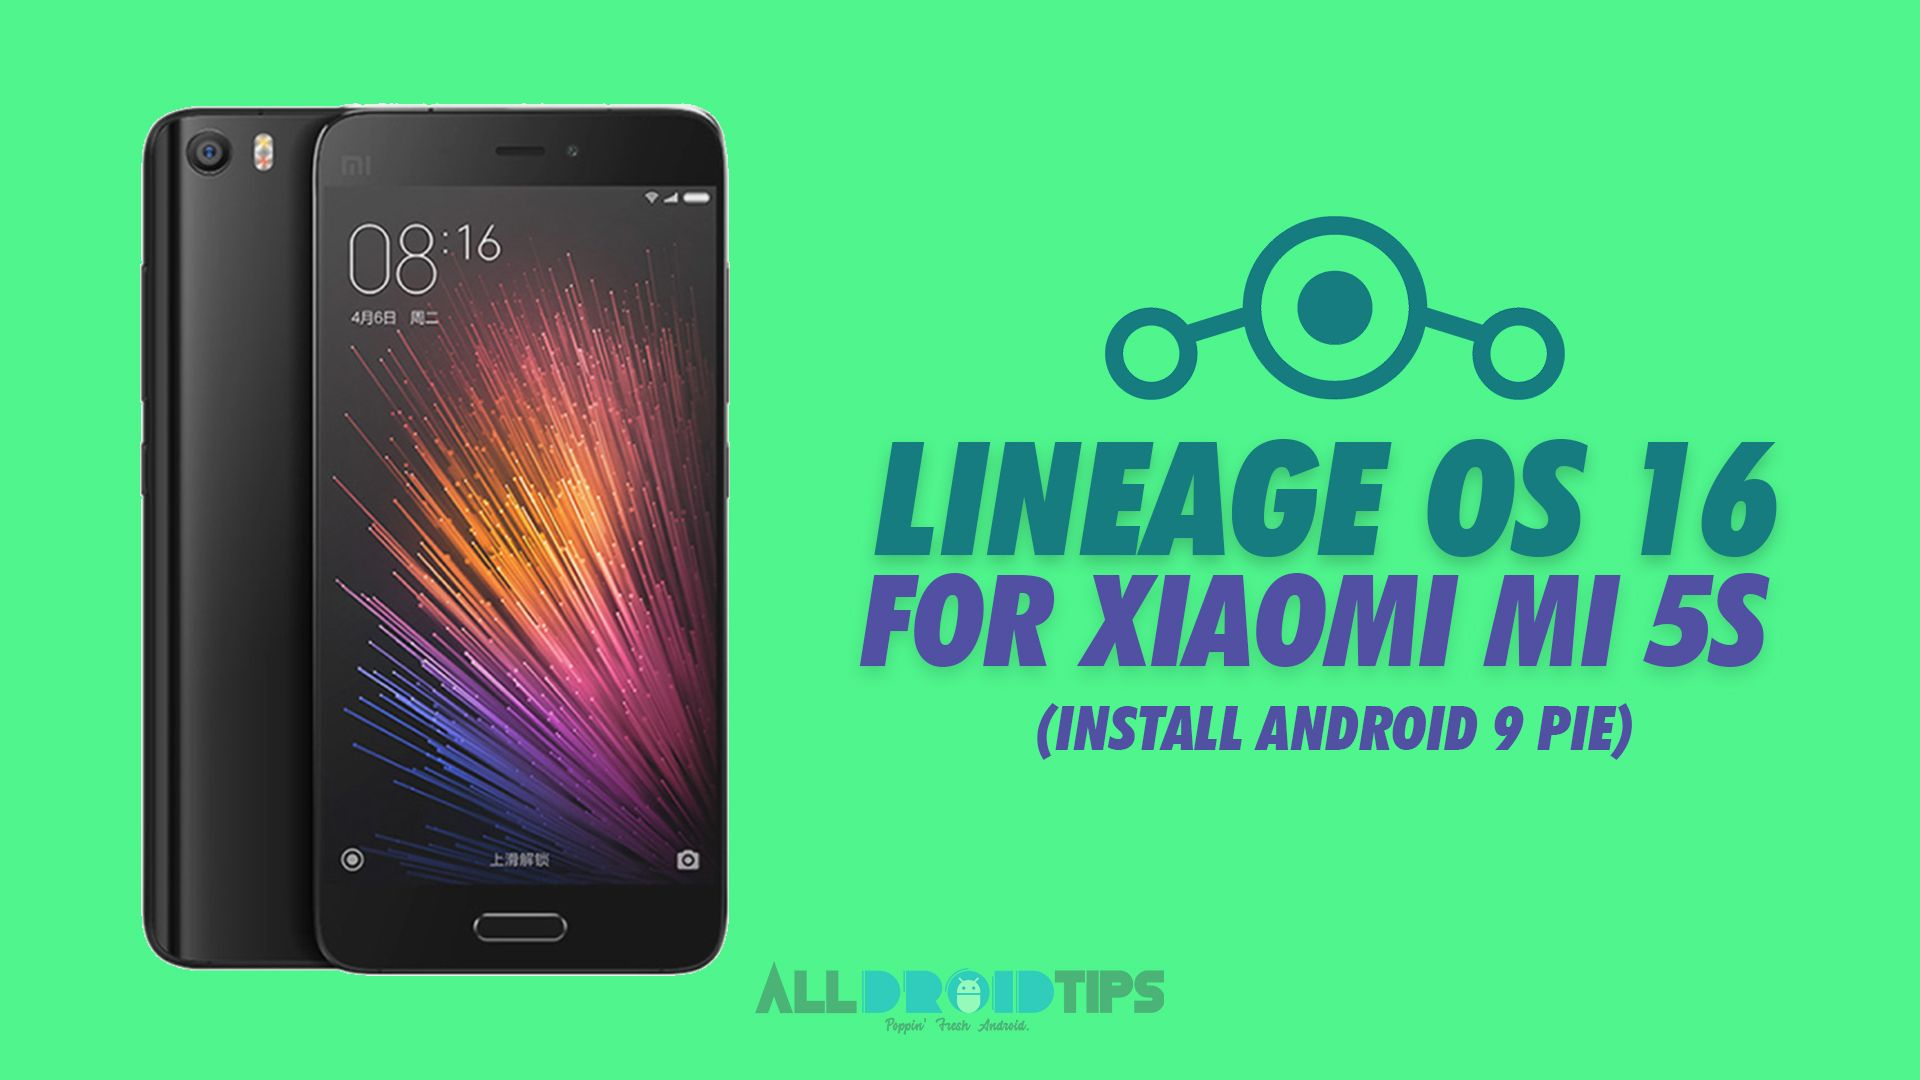 In this guide, we will help you to Install Lineage OS 16 on Xiaomi